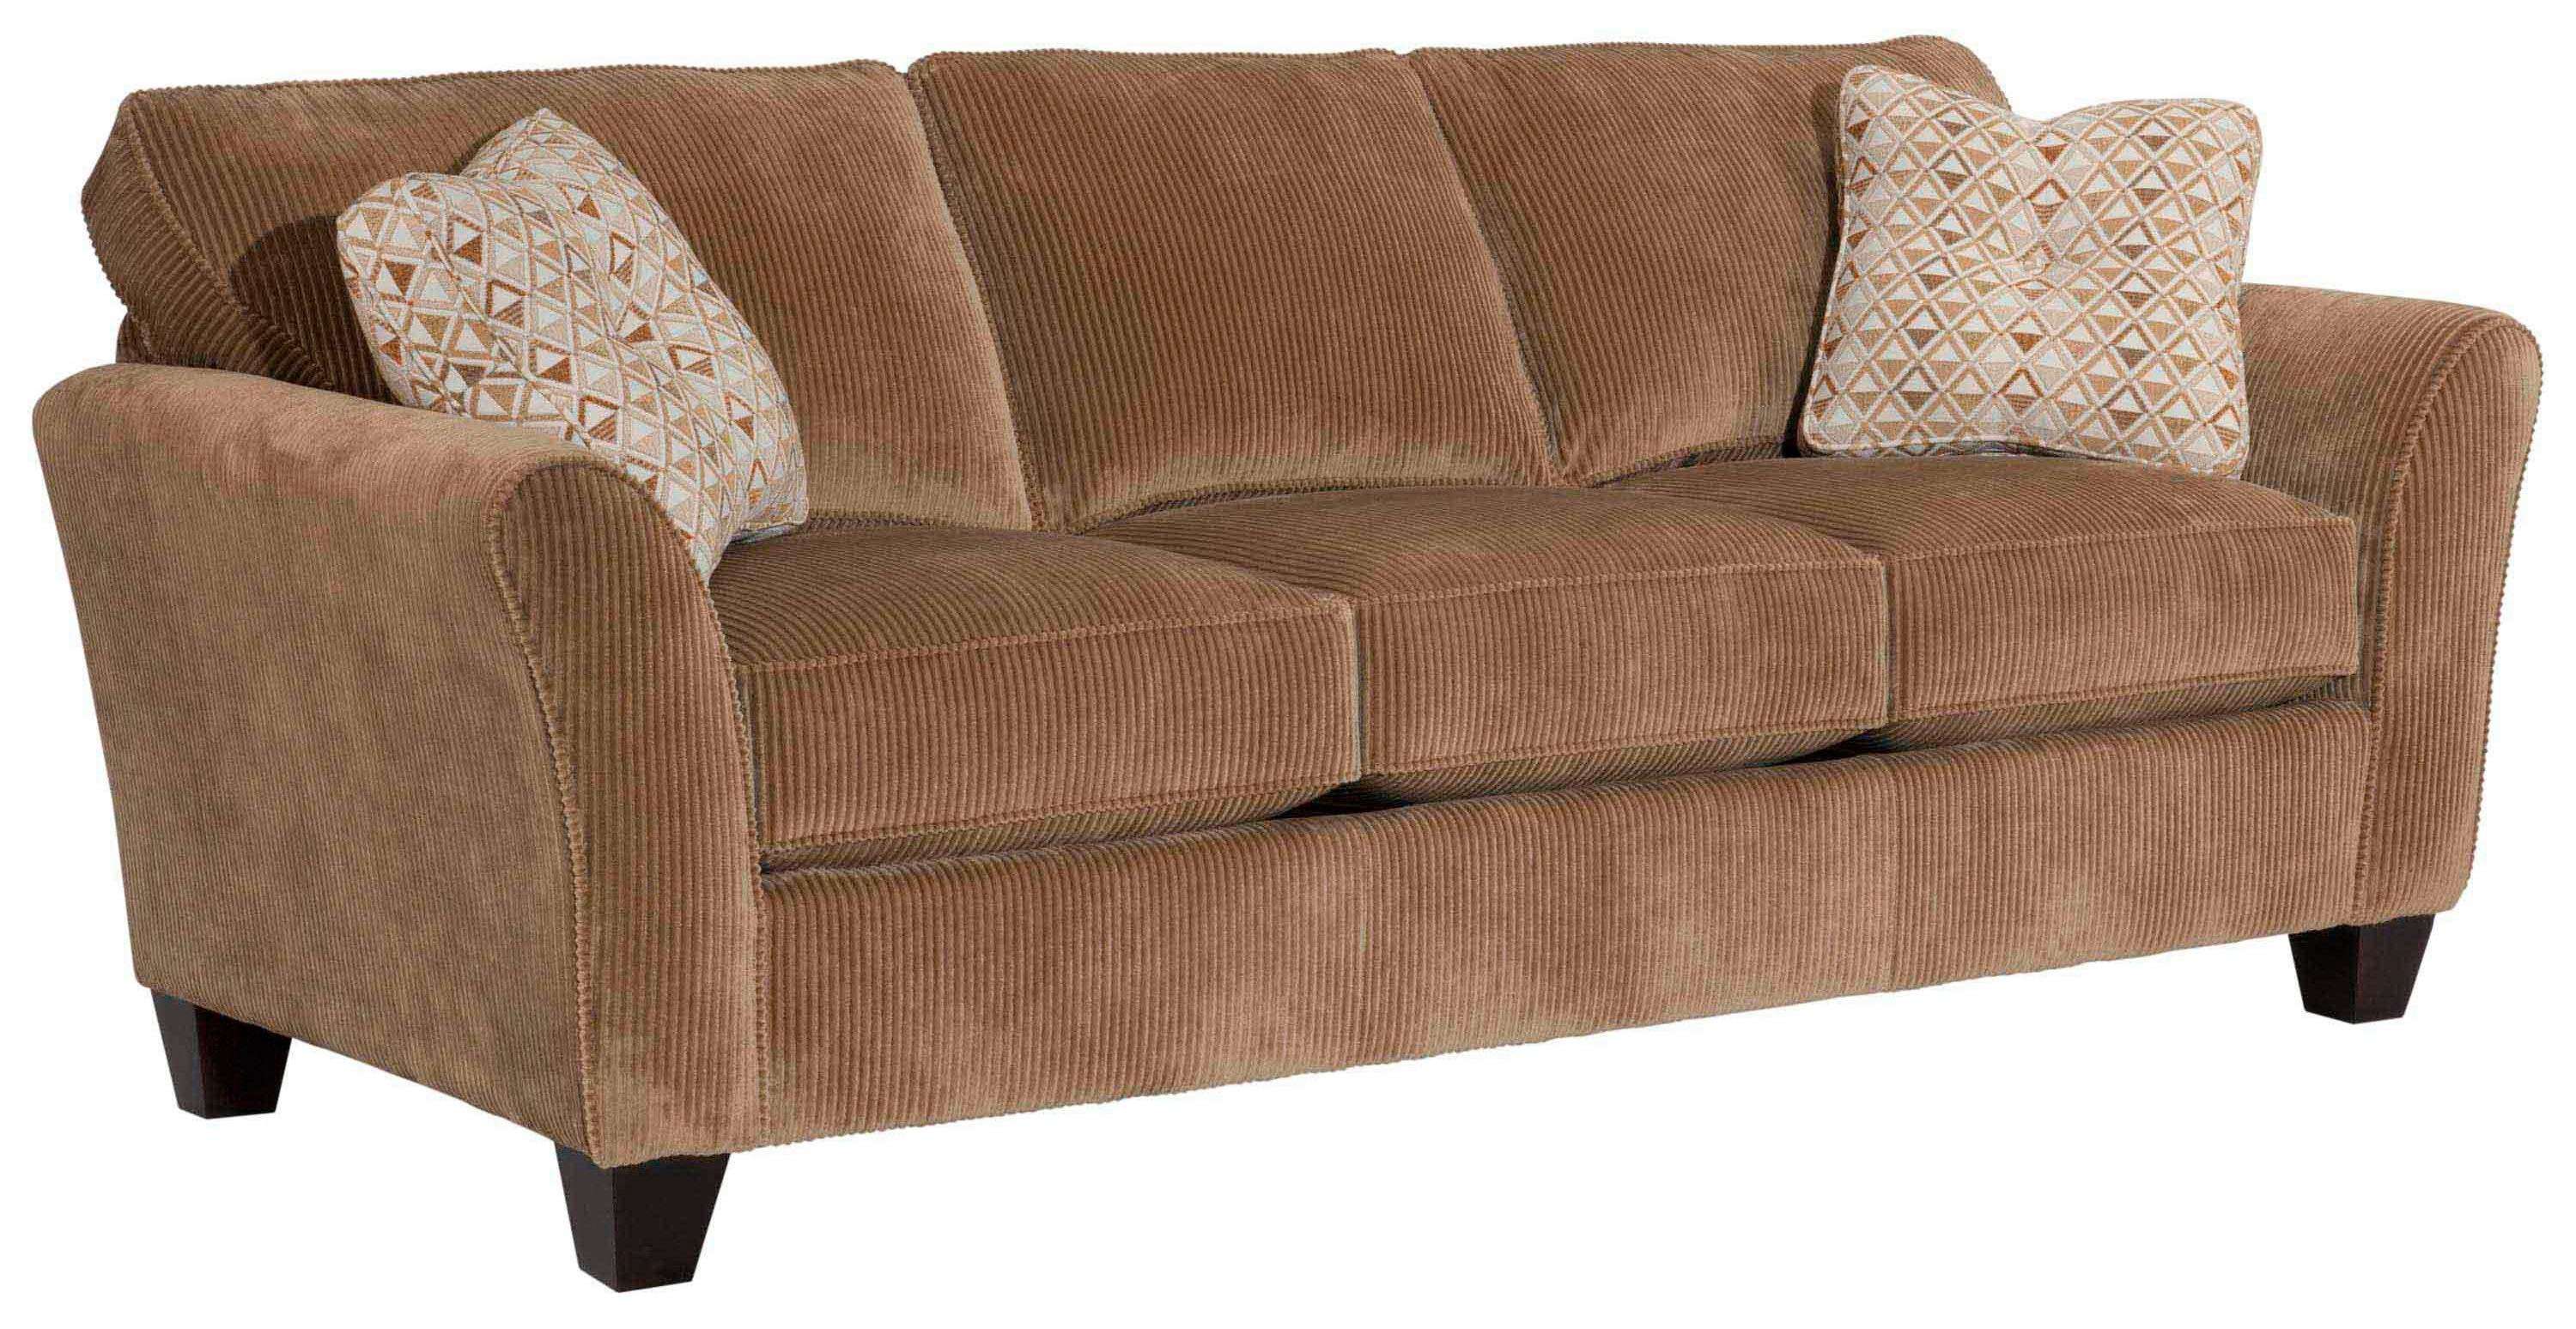 natalia leather and chenille sofa cheap slipcovers for sectional sofas contemporary style review